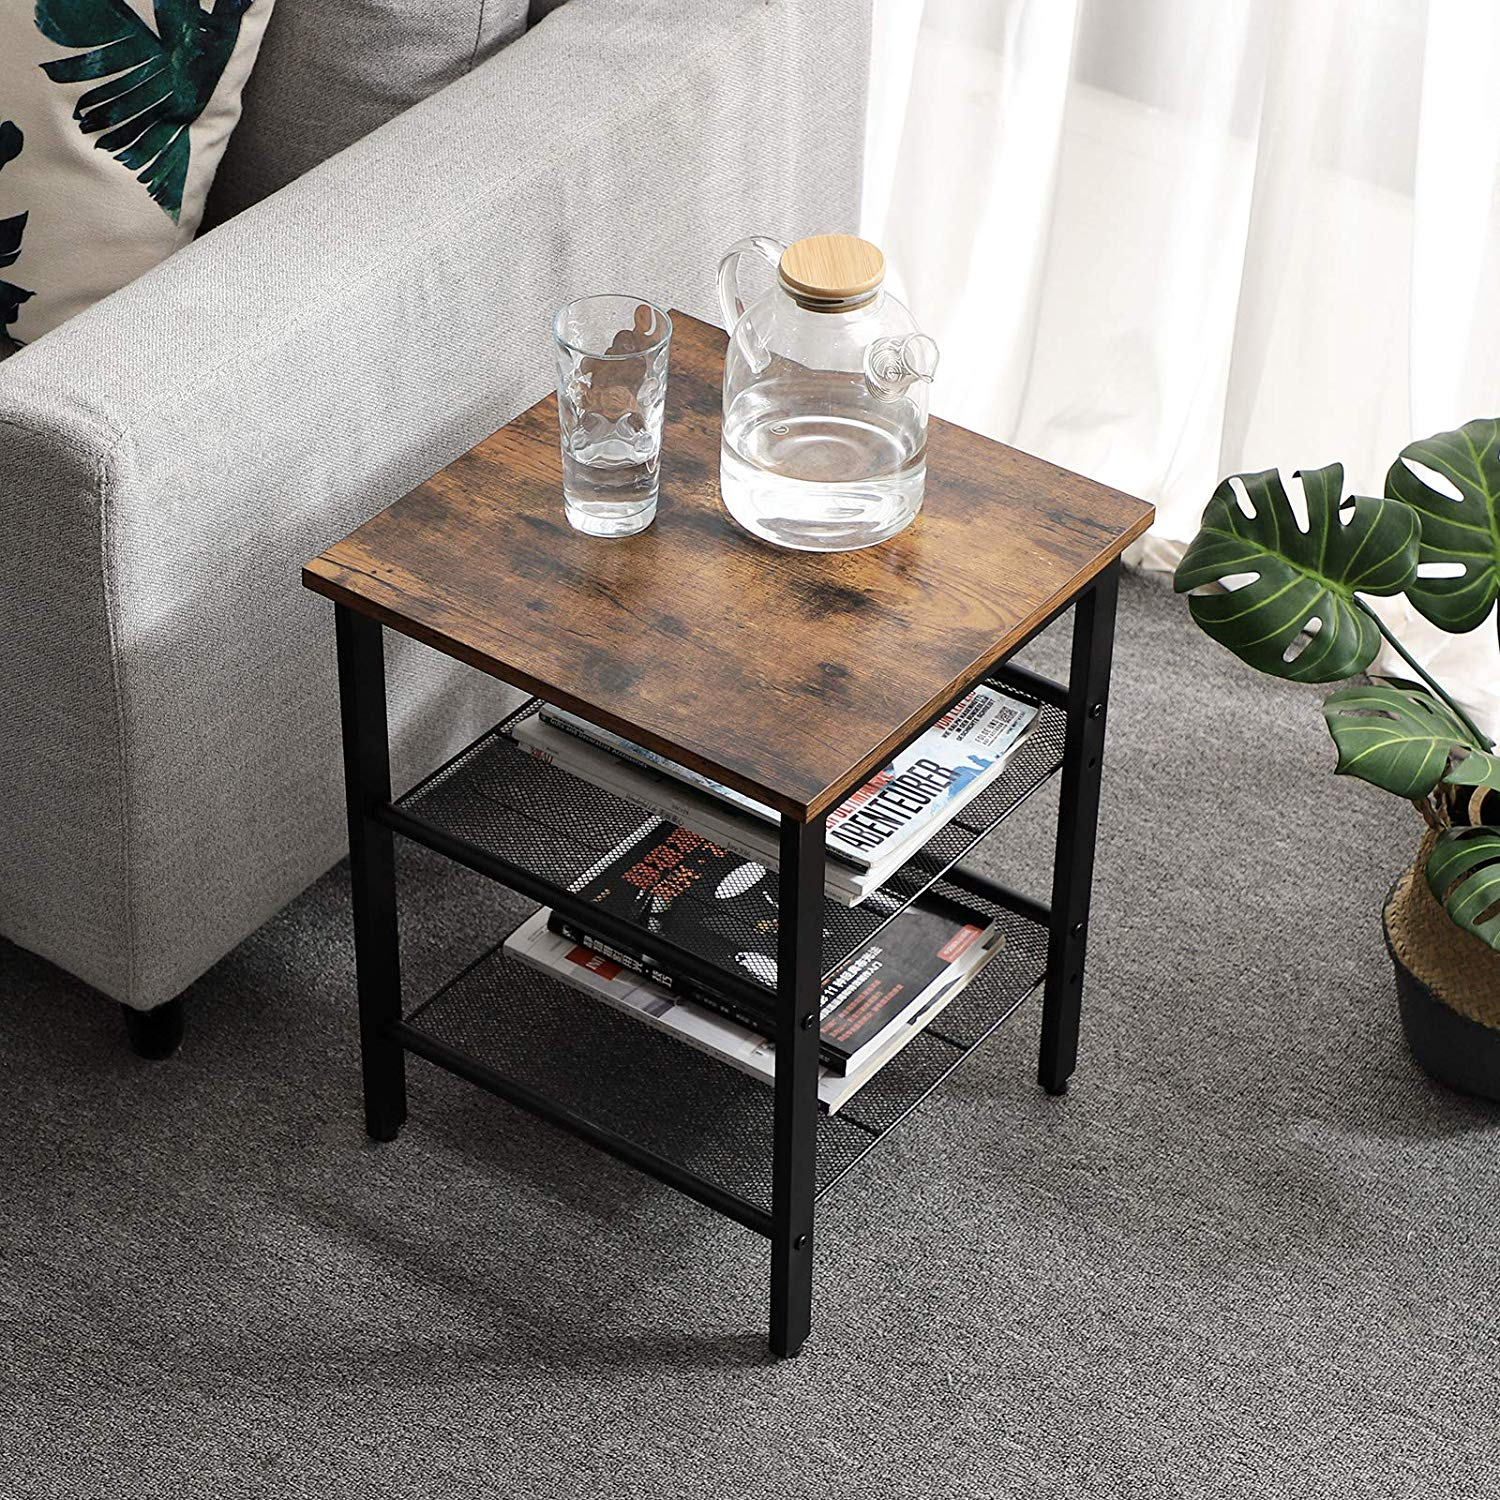 25% OFF VASAGLE Side Table Set